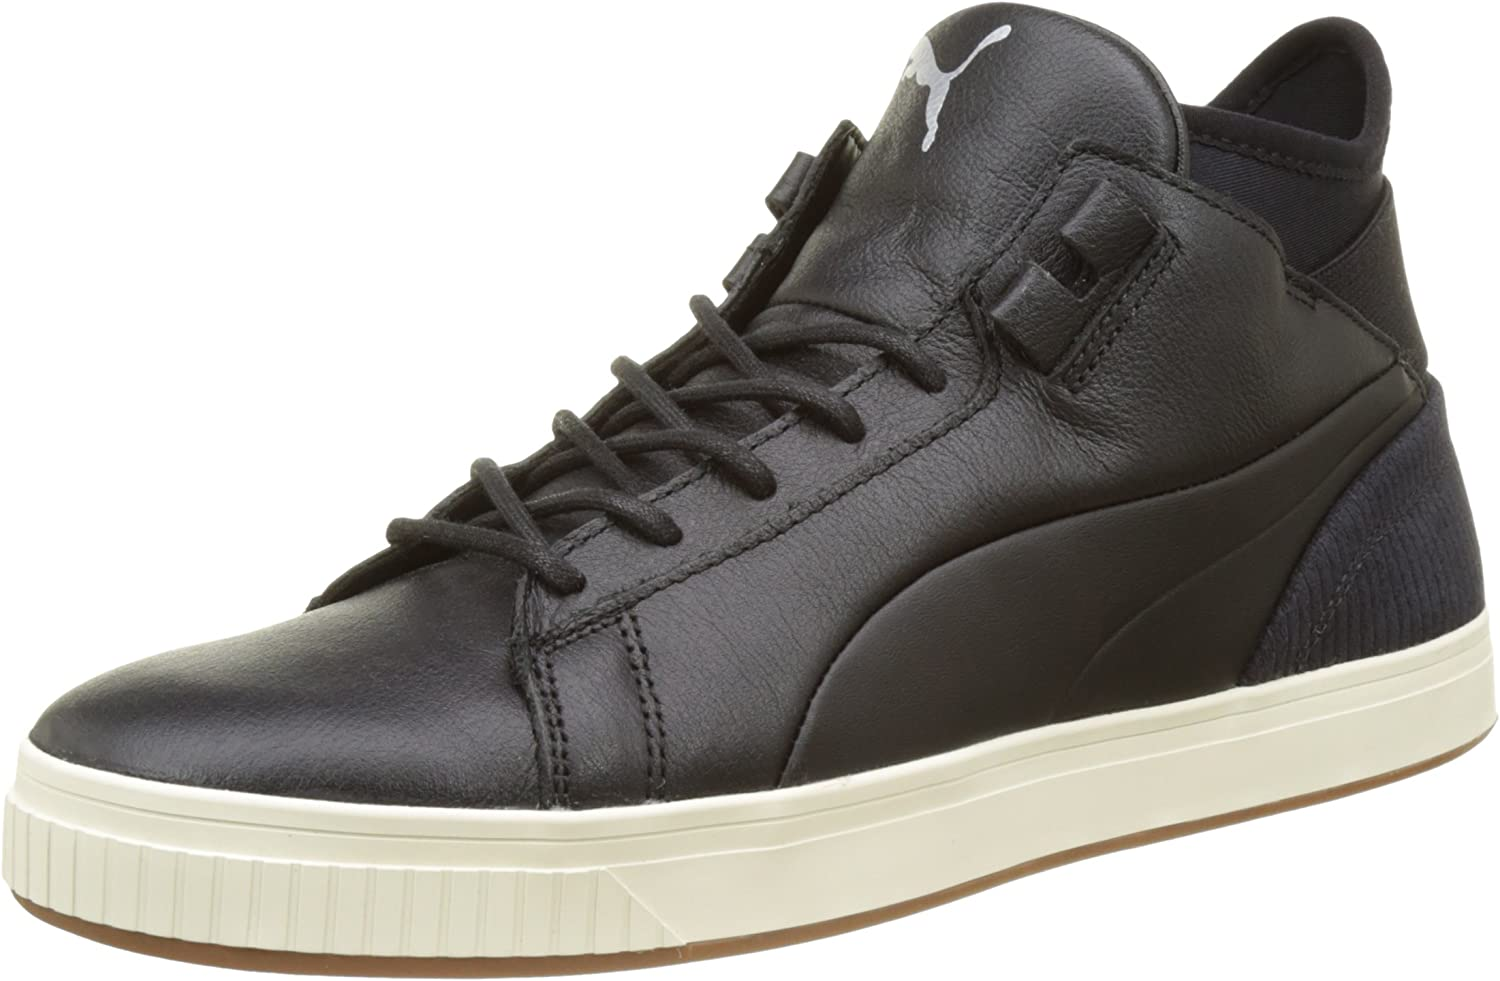 PUMA Unisex Adults' Play Citi Low-Top Sneakers